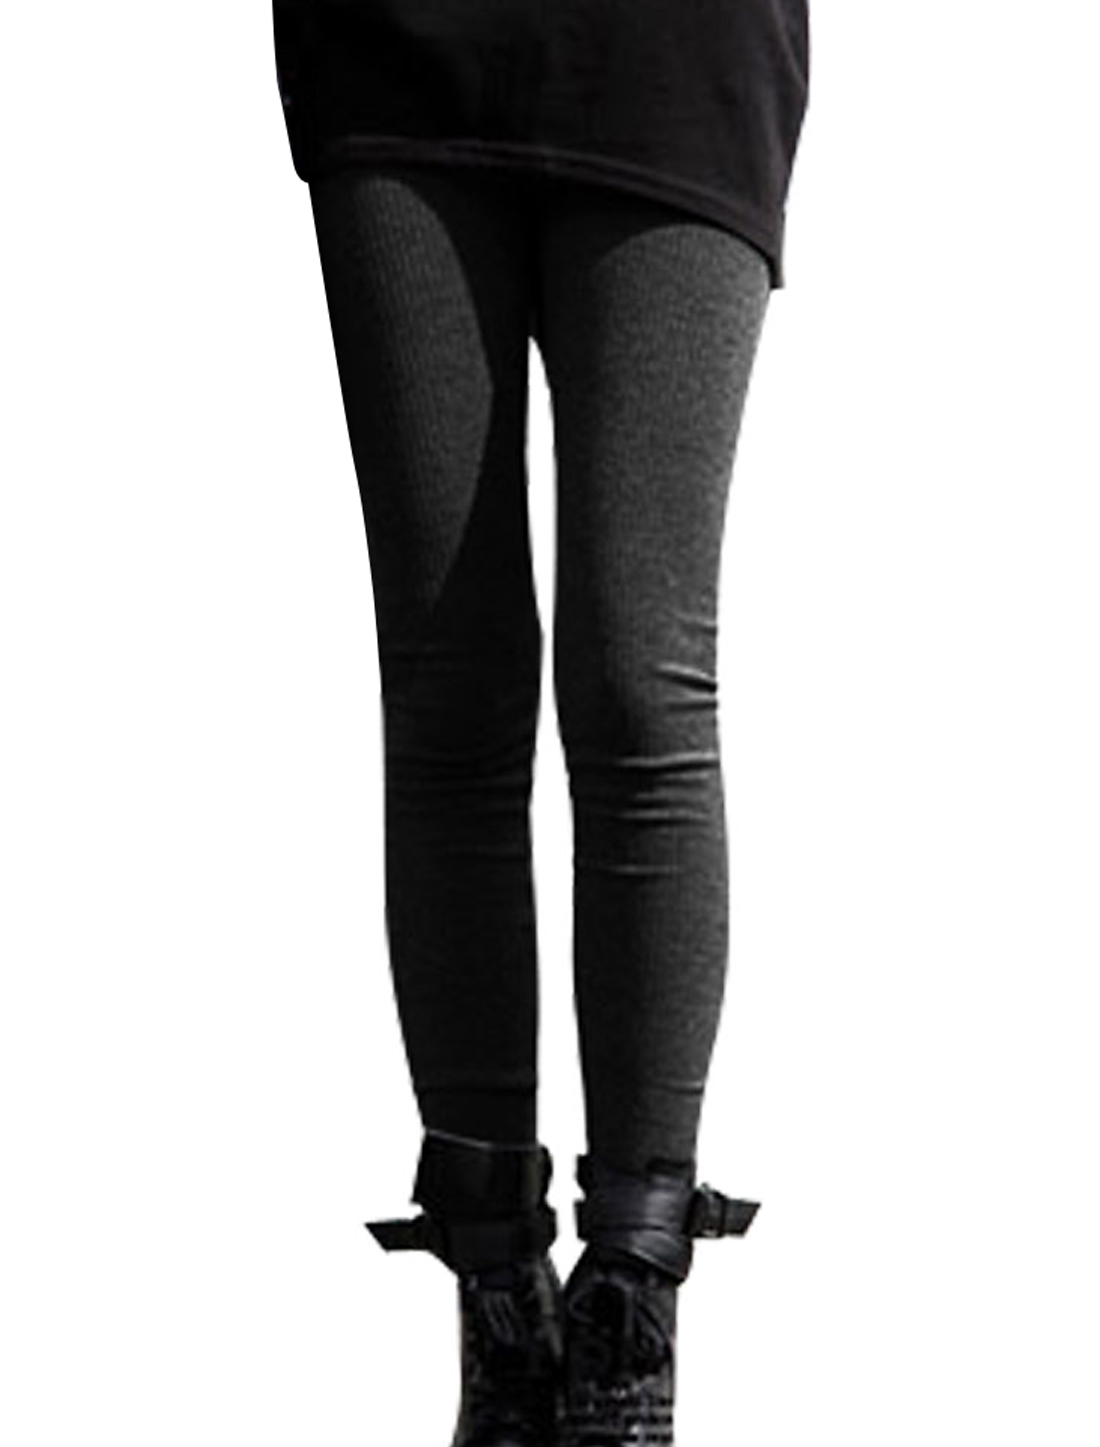 Ladies Black Elastic Waist Form-fitting Cropped Leggings XS